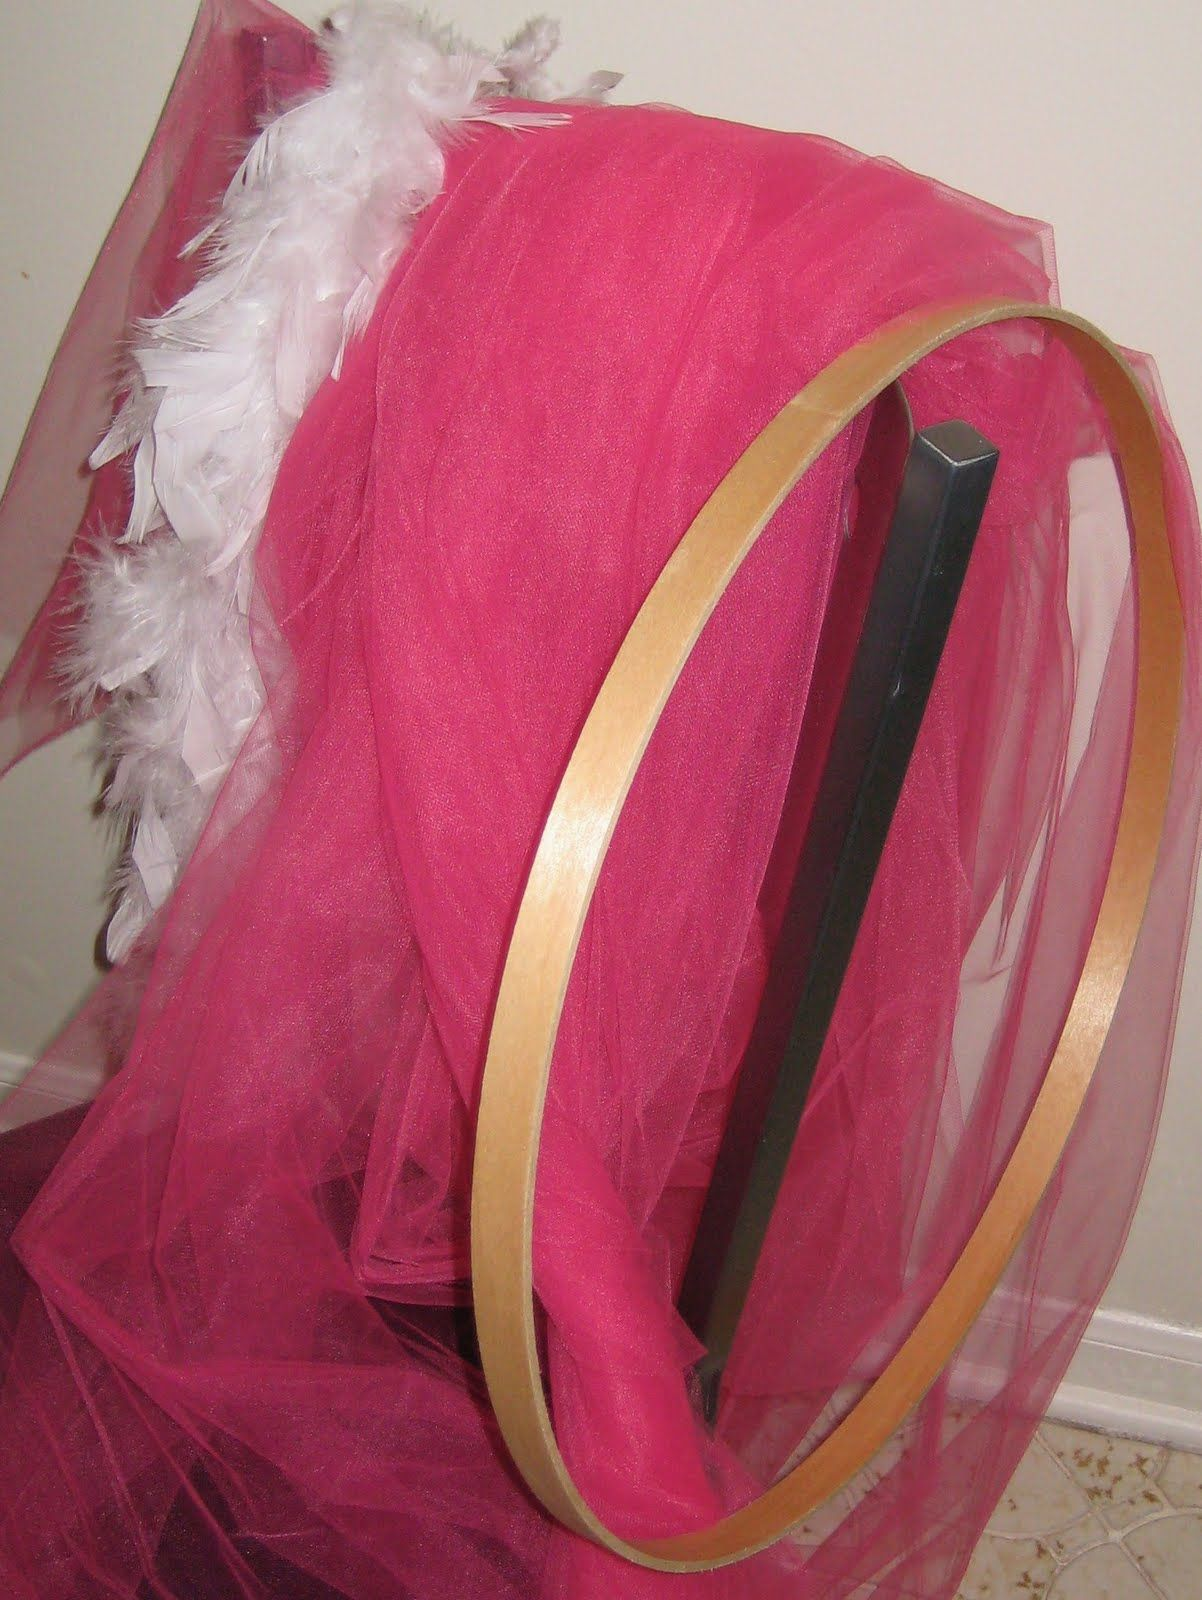 Bed Canopy | Canopy bed diy, Diy canopy, Tulle canopy